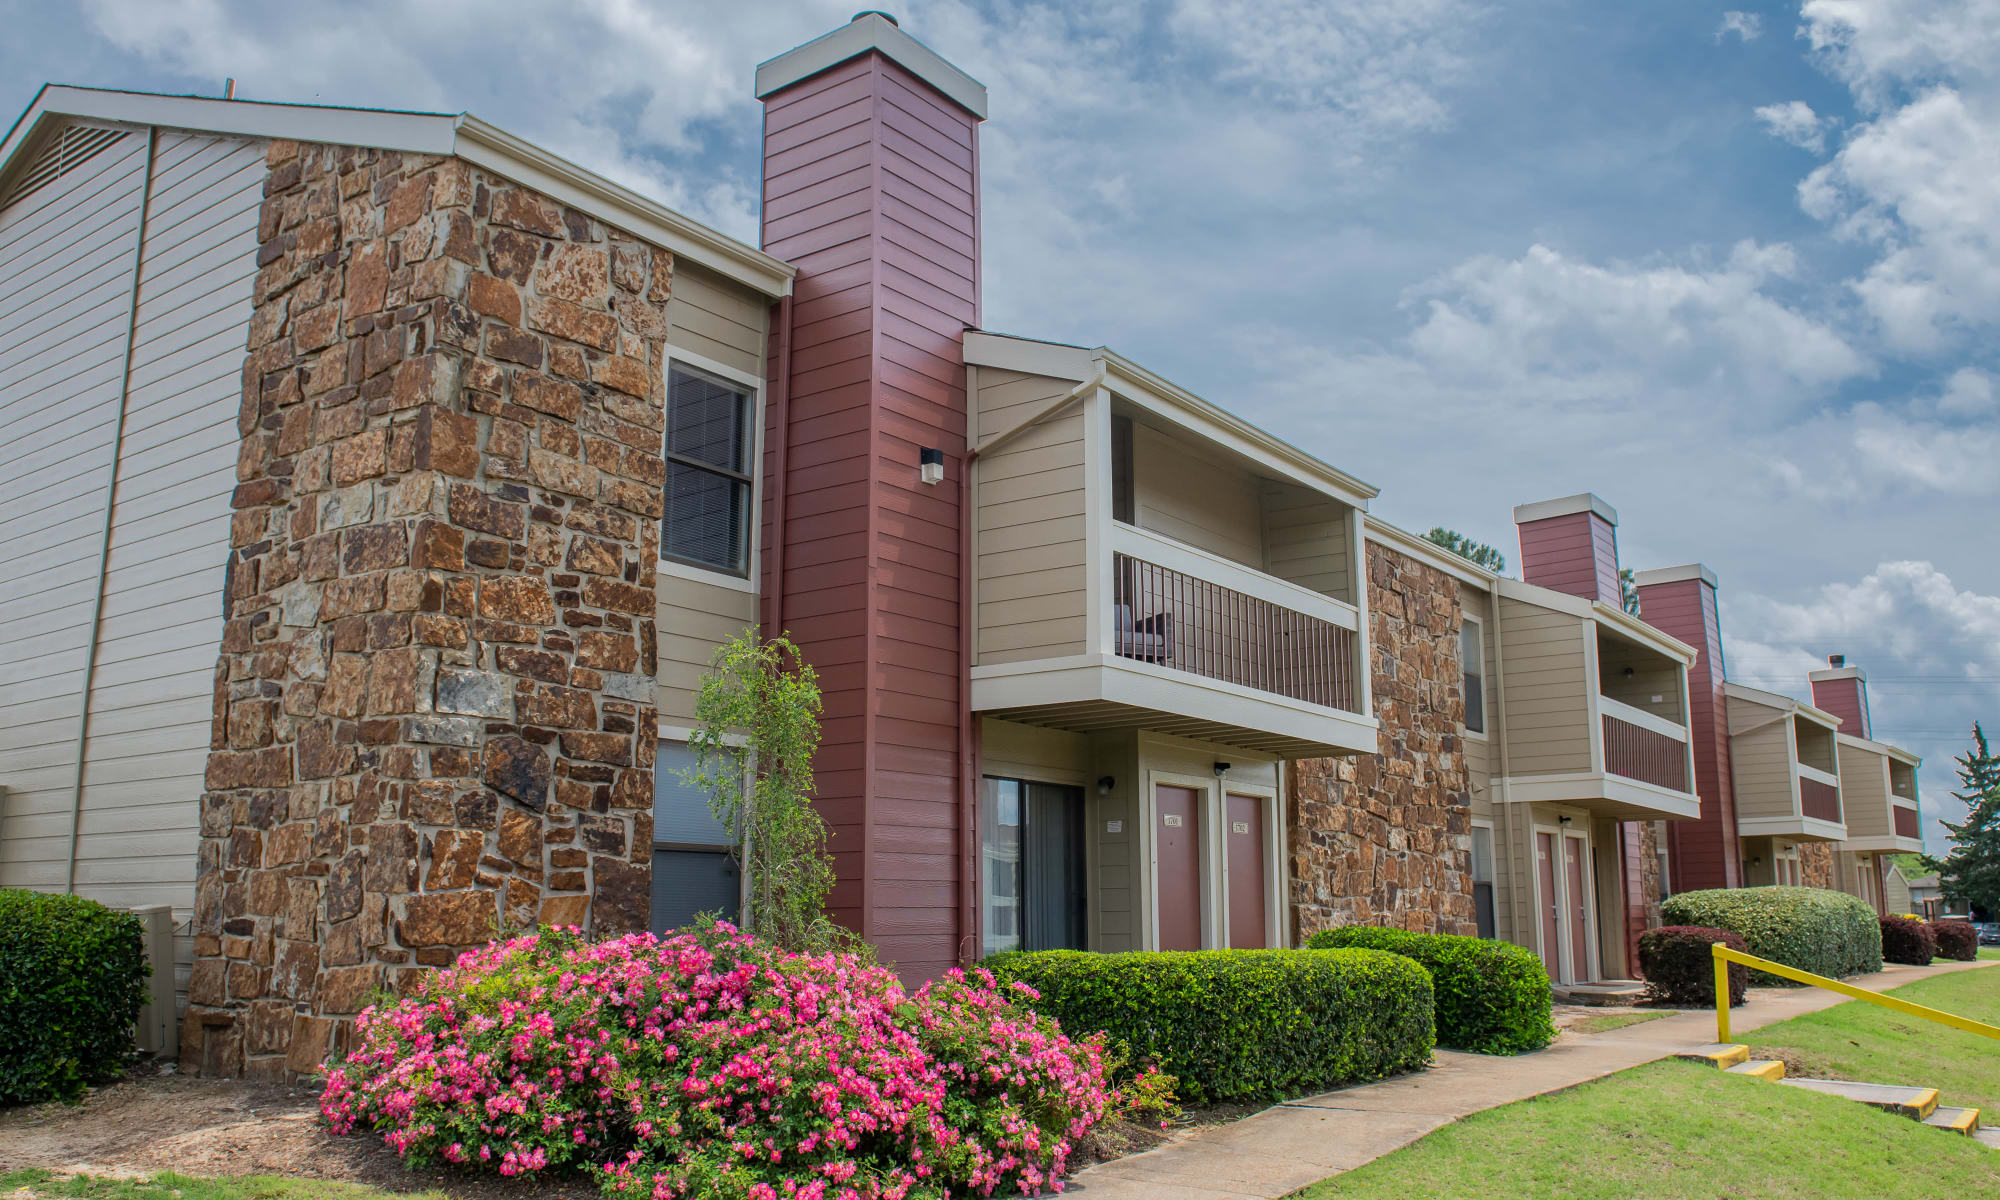 Exterior of Sunchase Ridgeland Apartments in Ridgeland, Mississippi